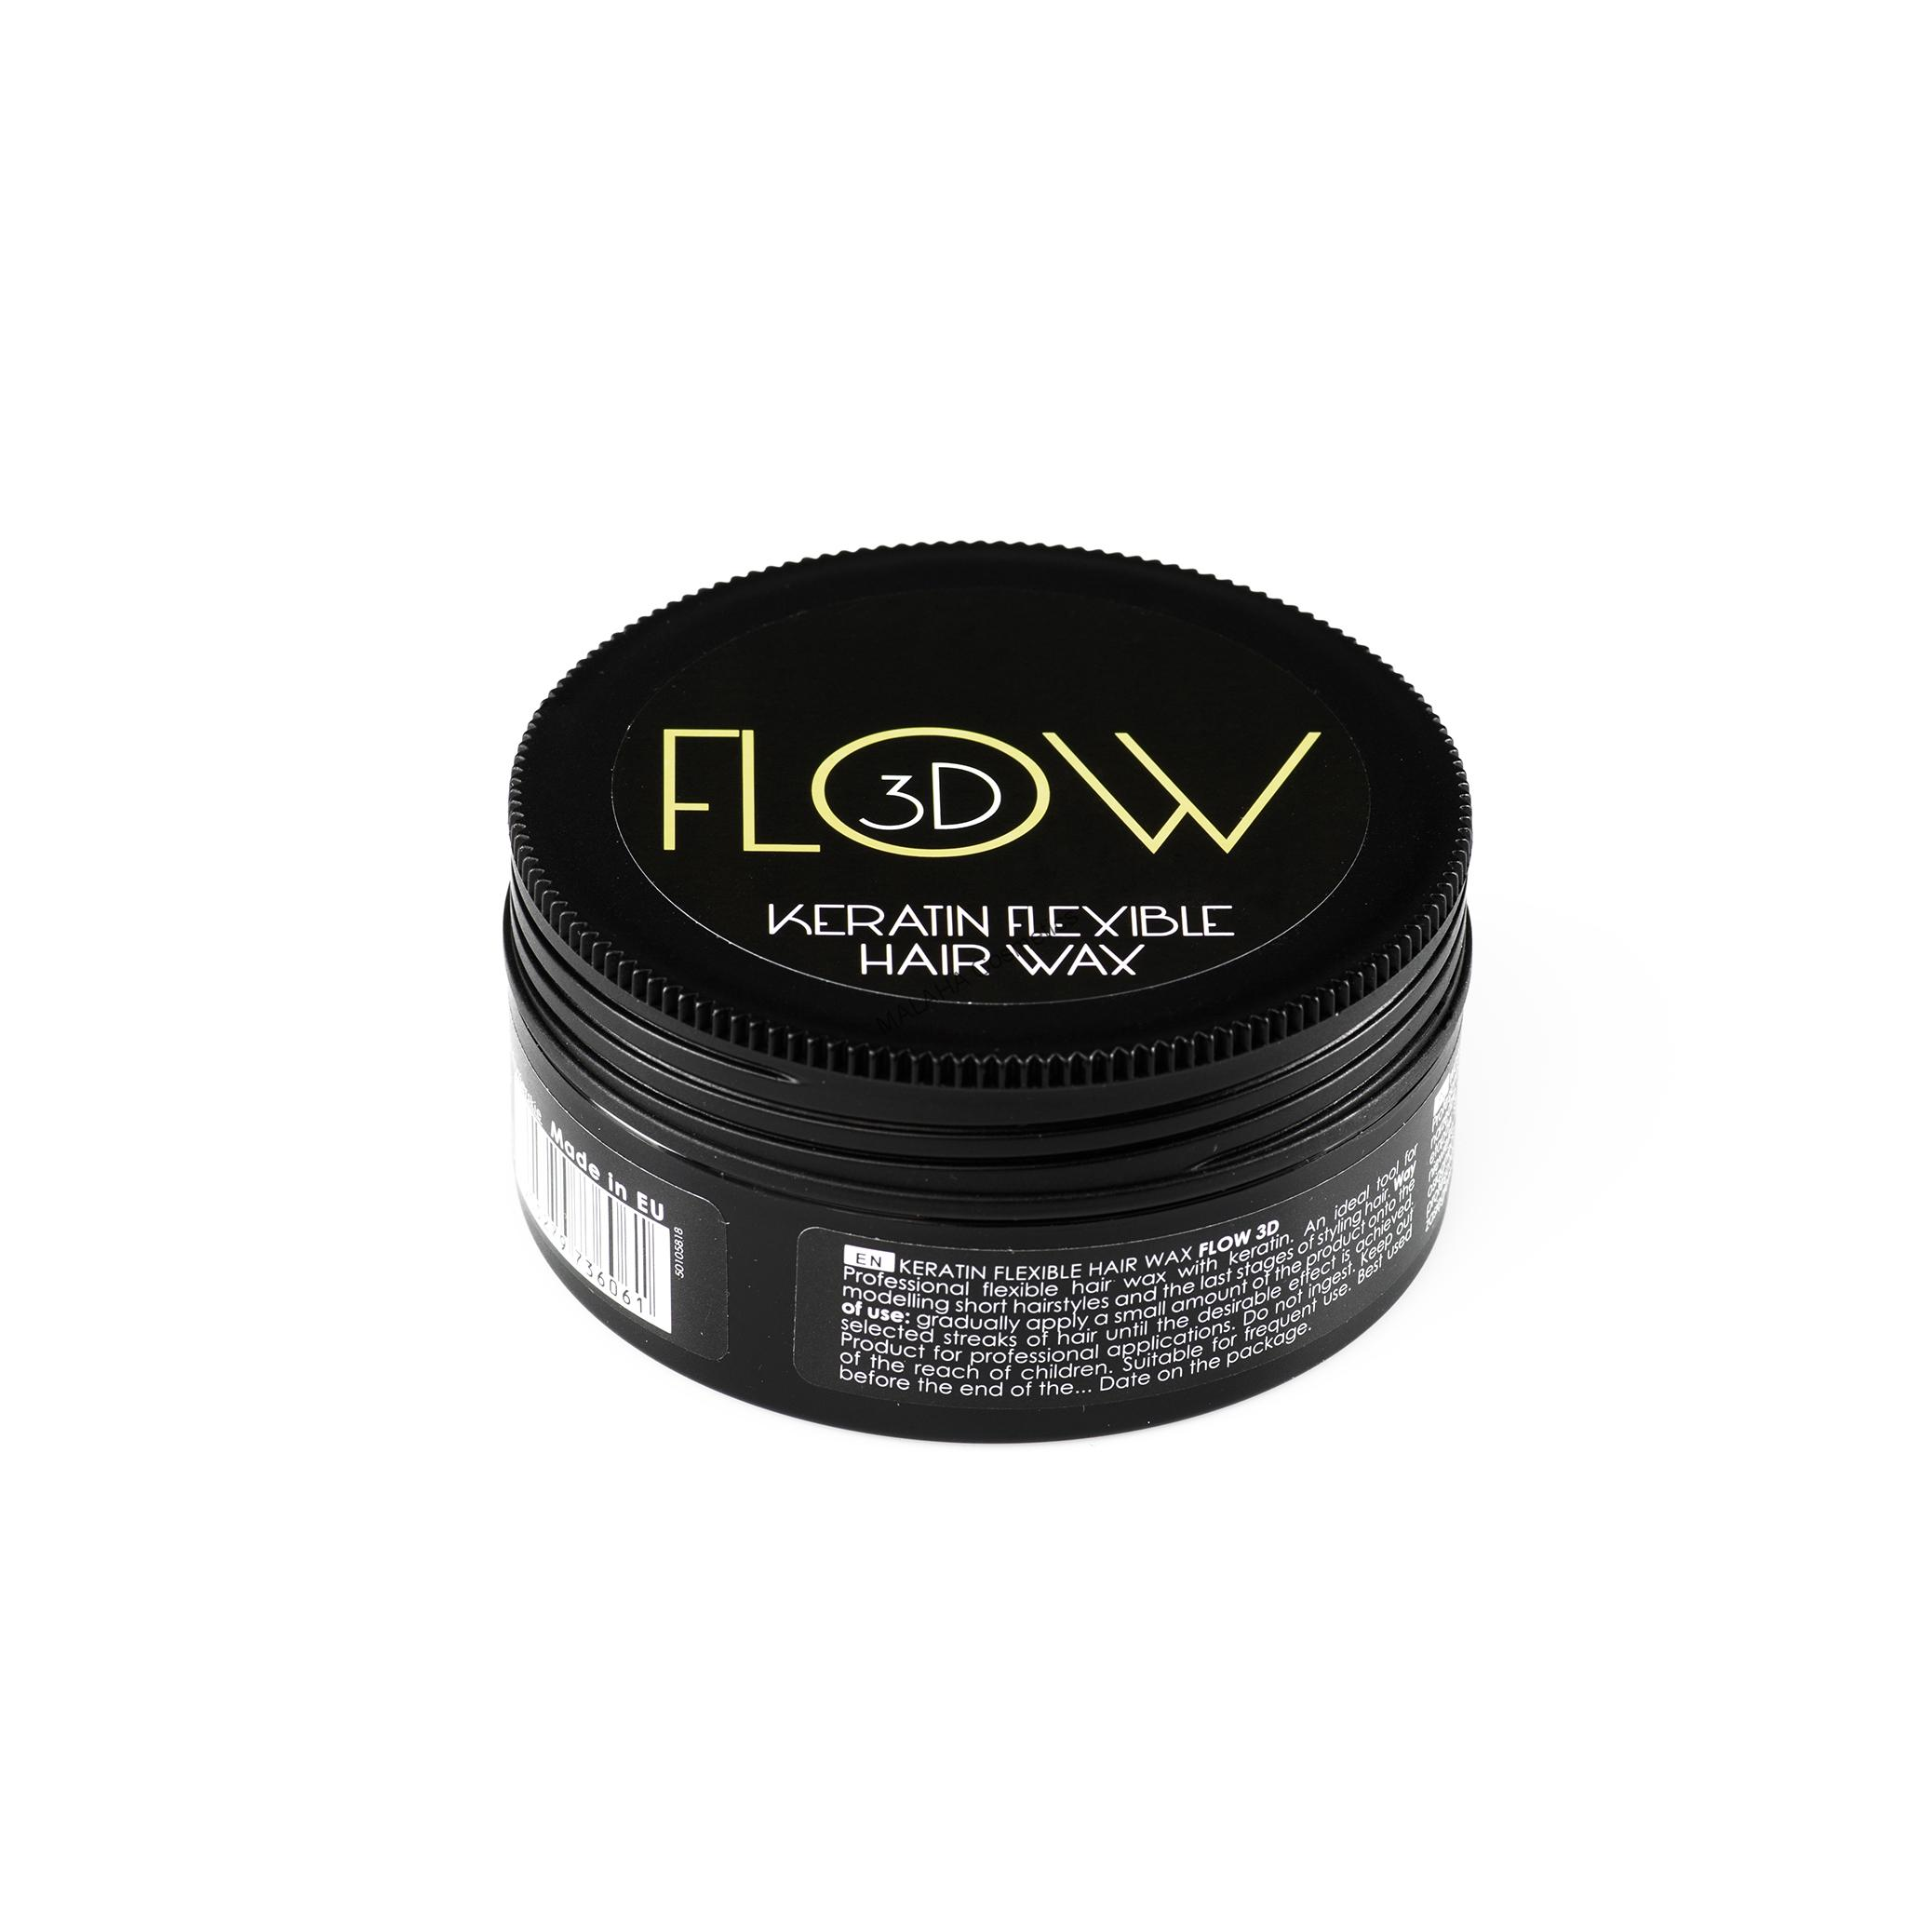 STAPIZ Keratin Flexible Hair Wax FLOW 3D